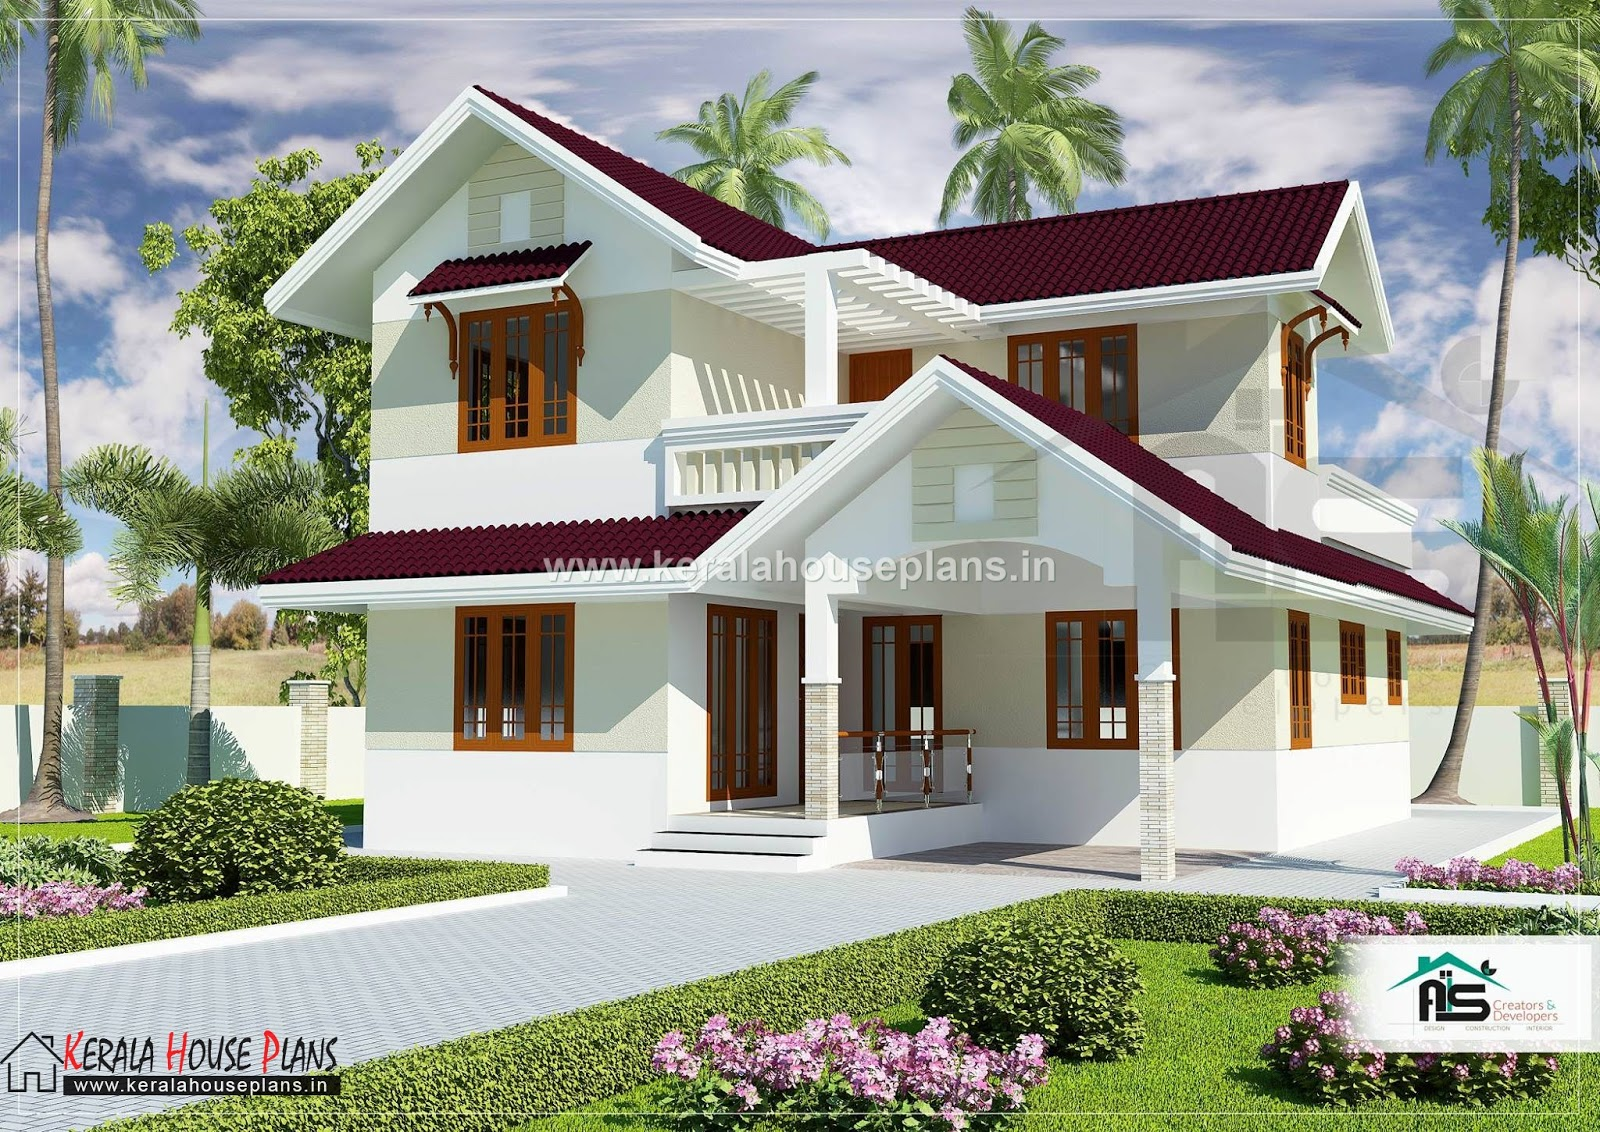 Kerala model house plans with elevation 1829 sqft kerala Model plans for house